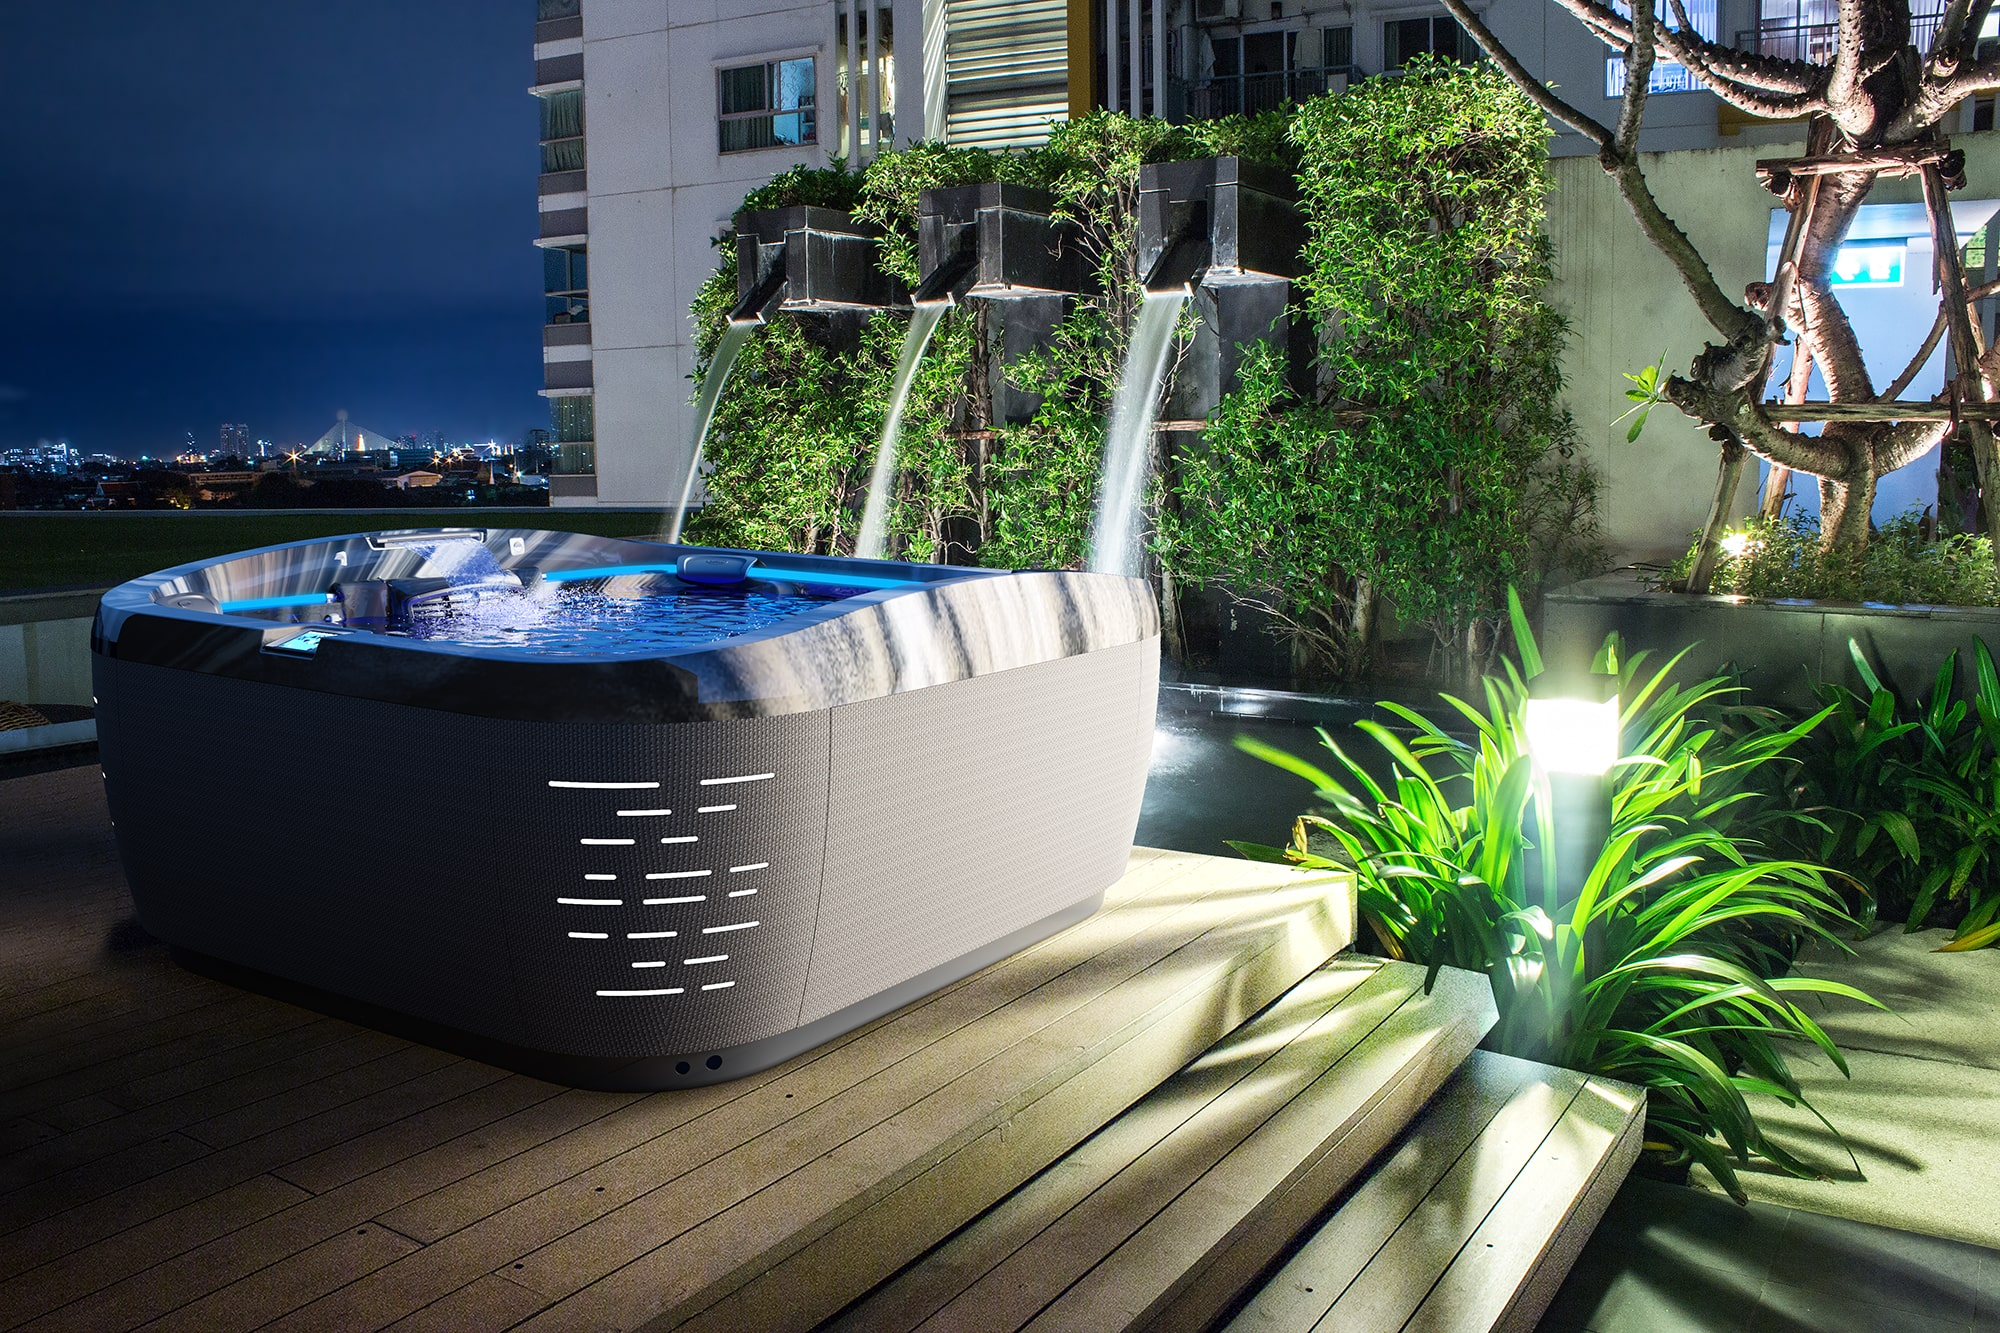 J-575 Jacuzzi Hot Tub installation at night in Sarasota